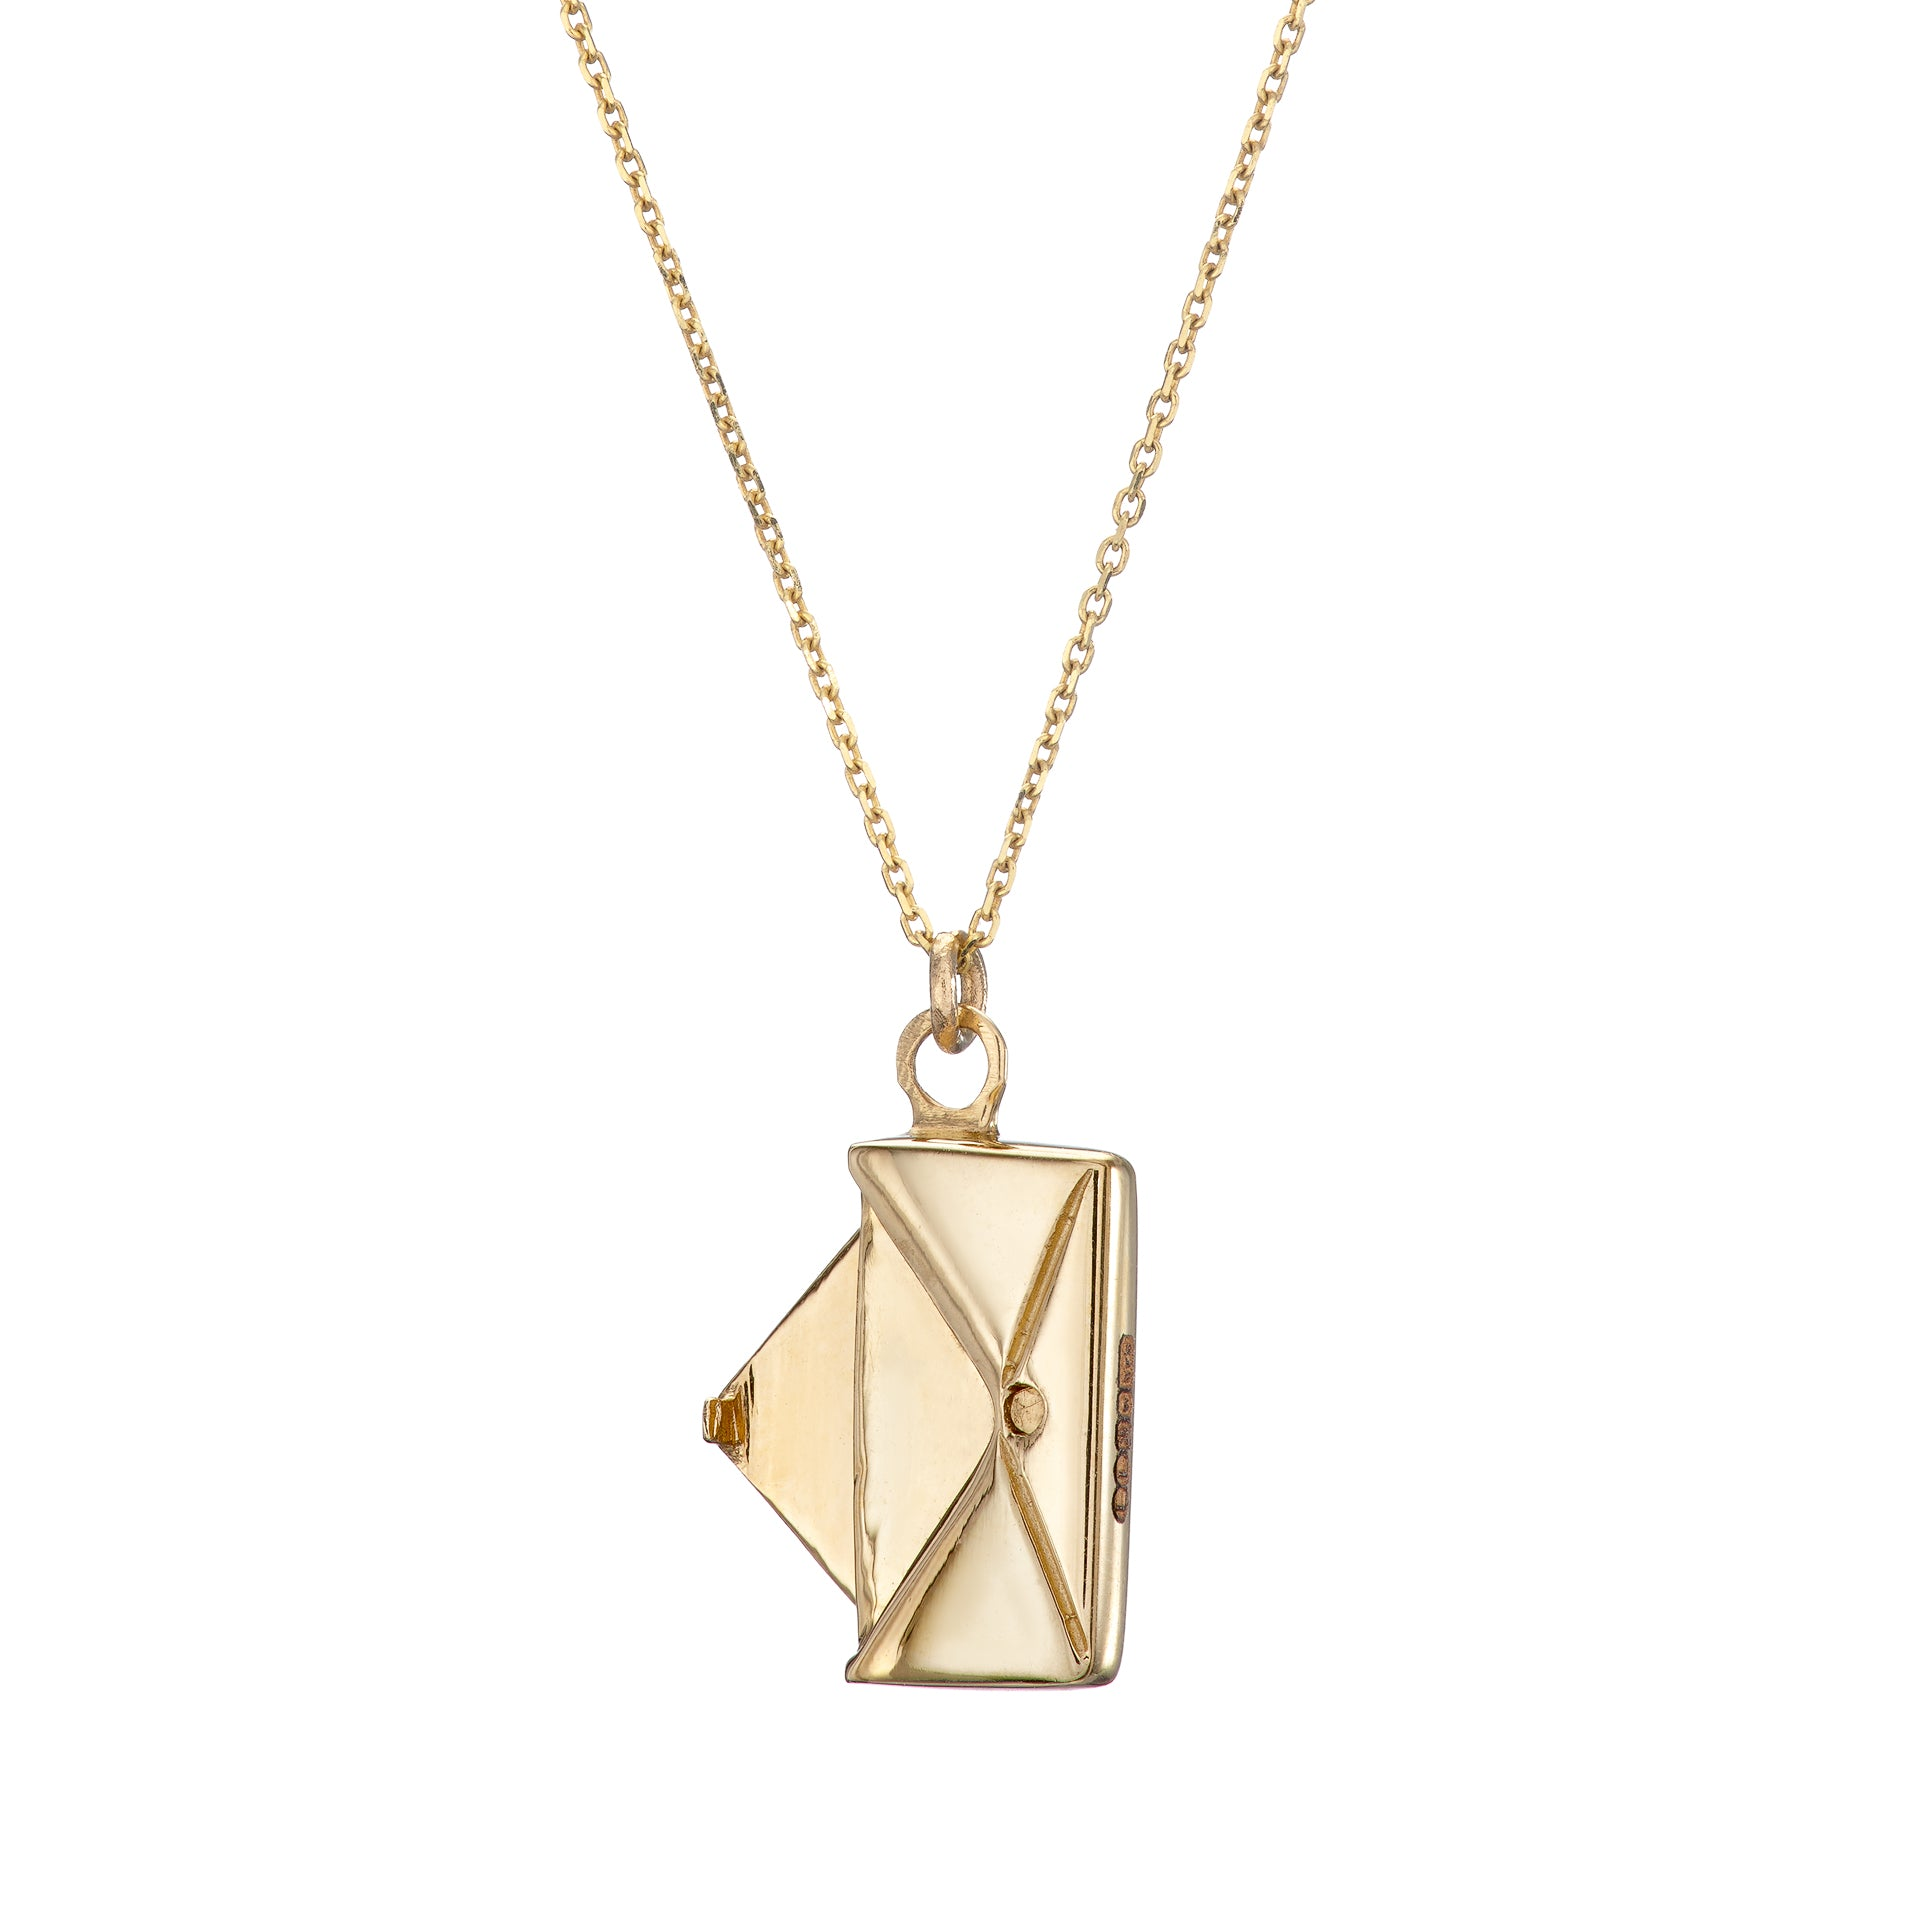 Signature Envelope Necklace - 9ct Gold